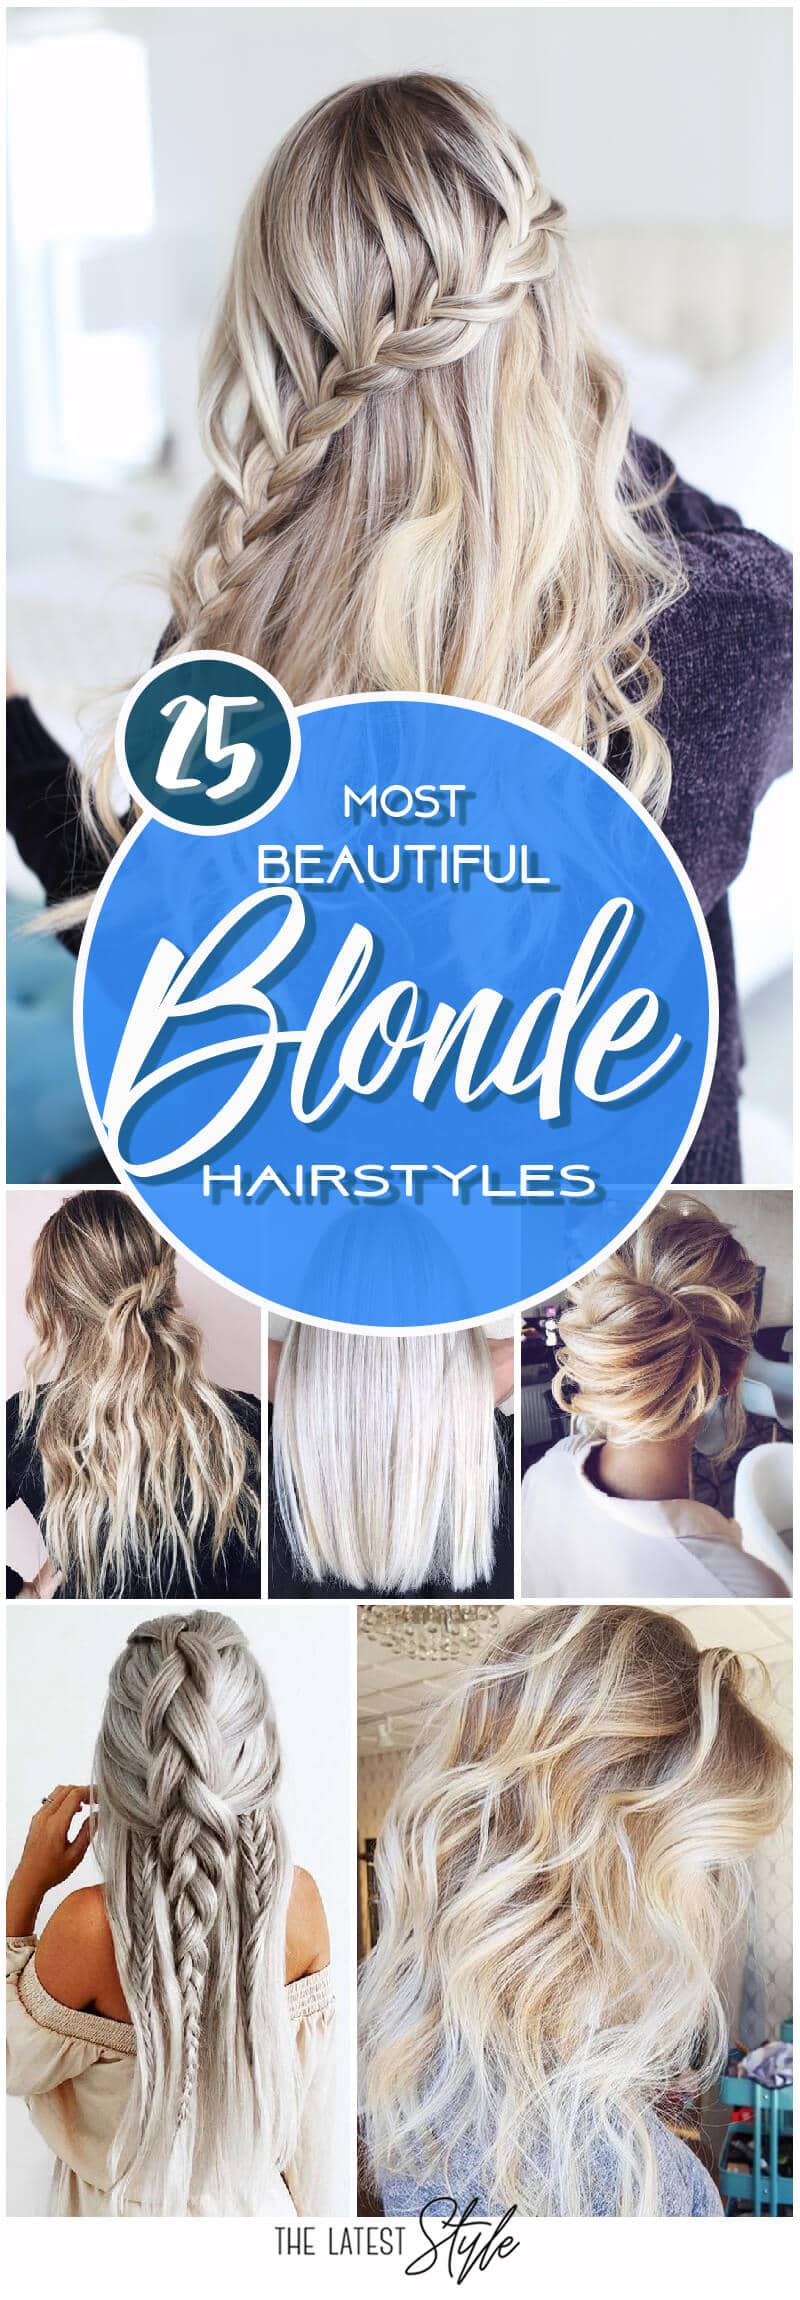 25 Most Beautiful Blonde Hairstyles for a Modern-Day Princess